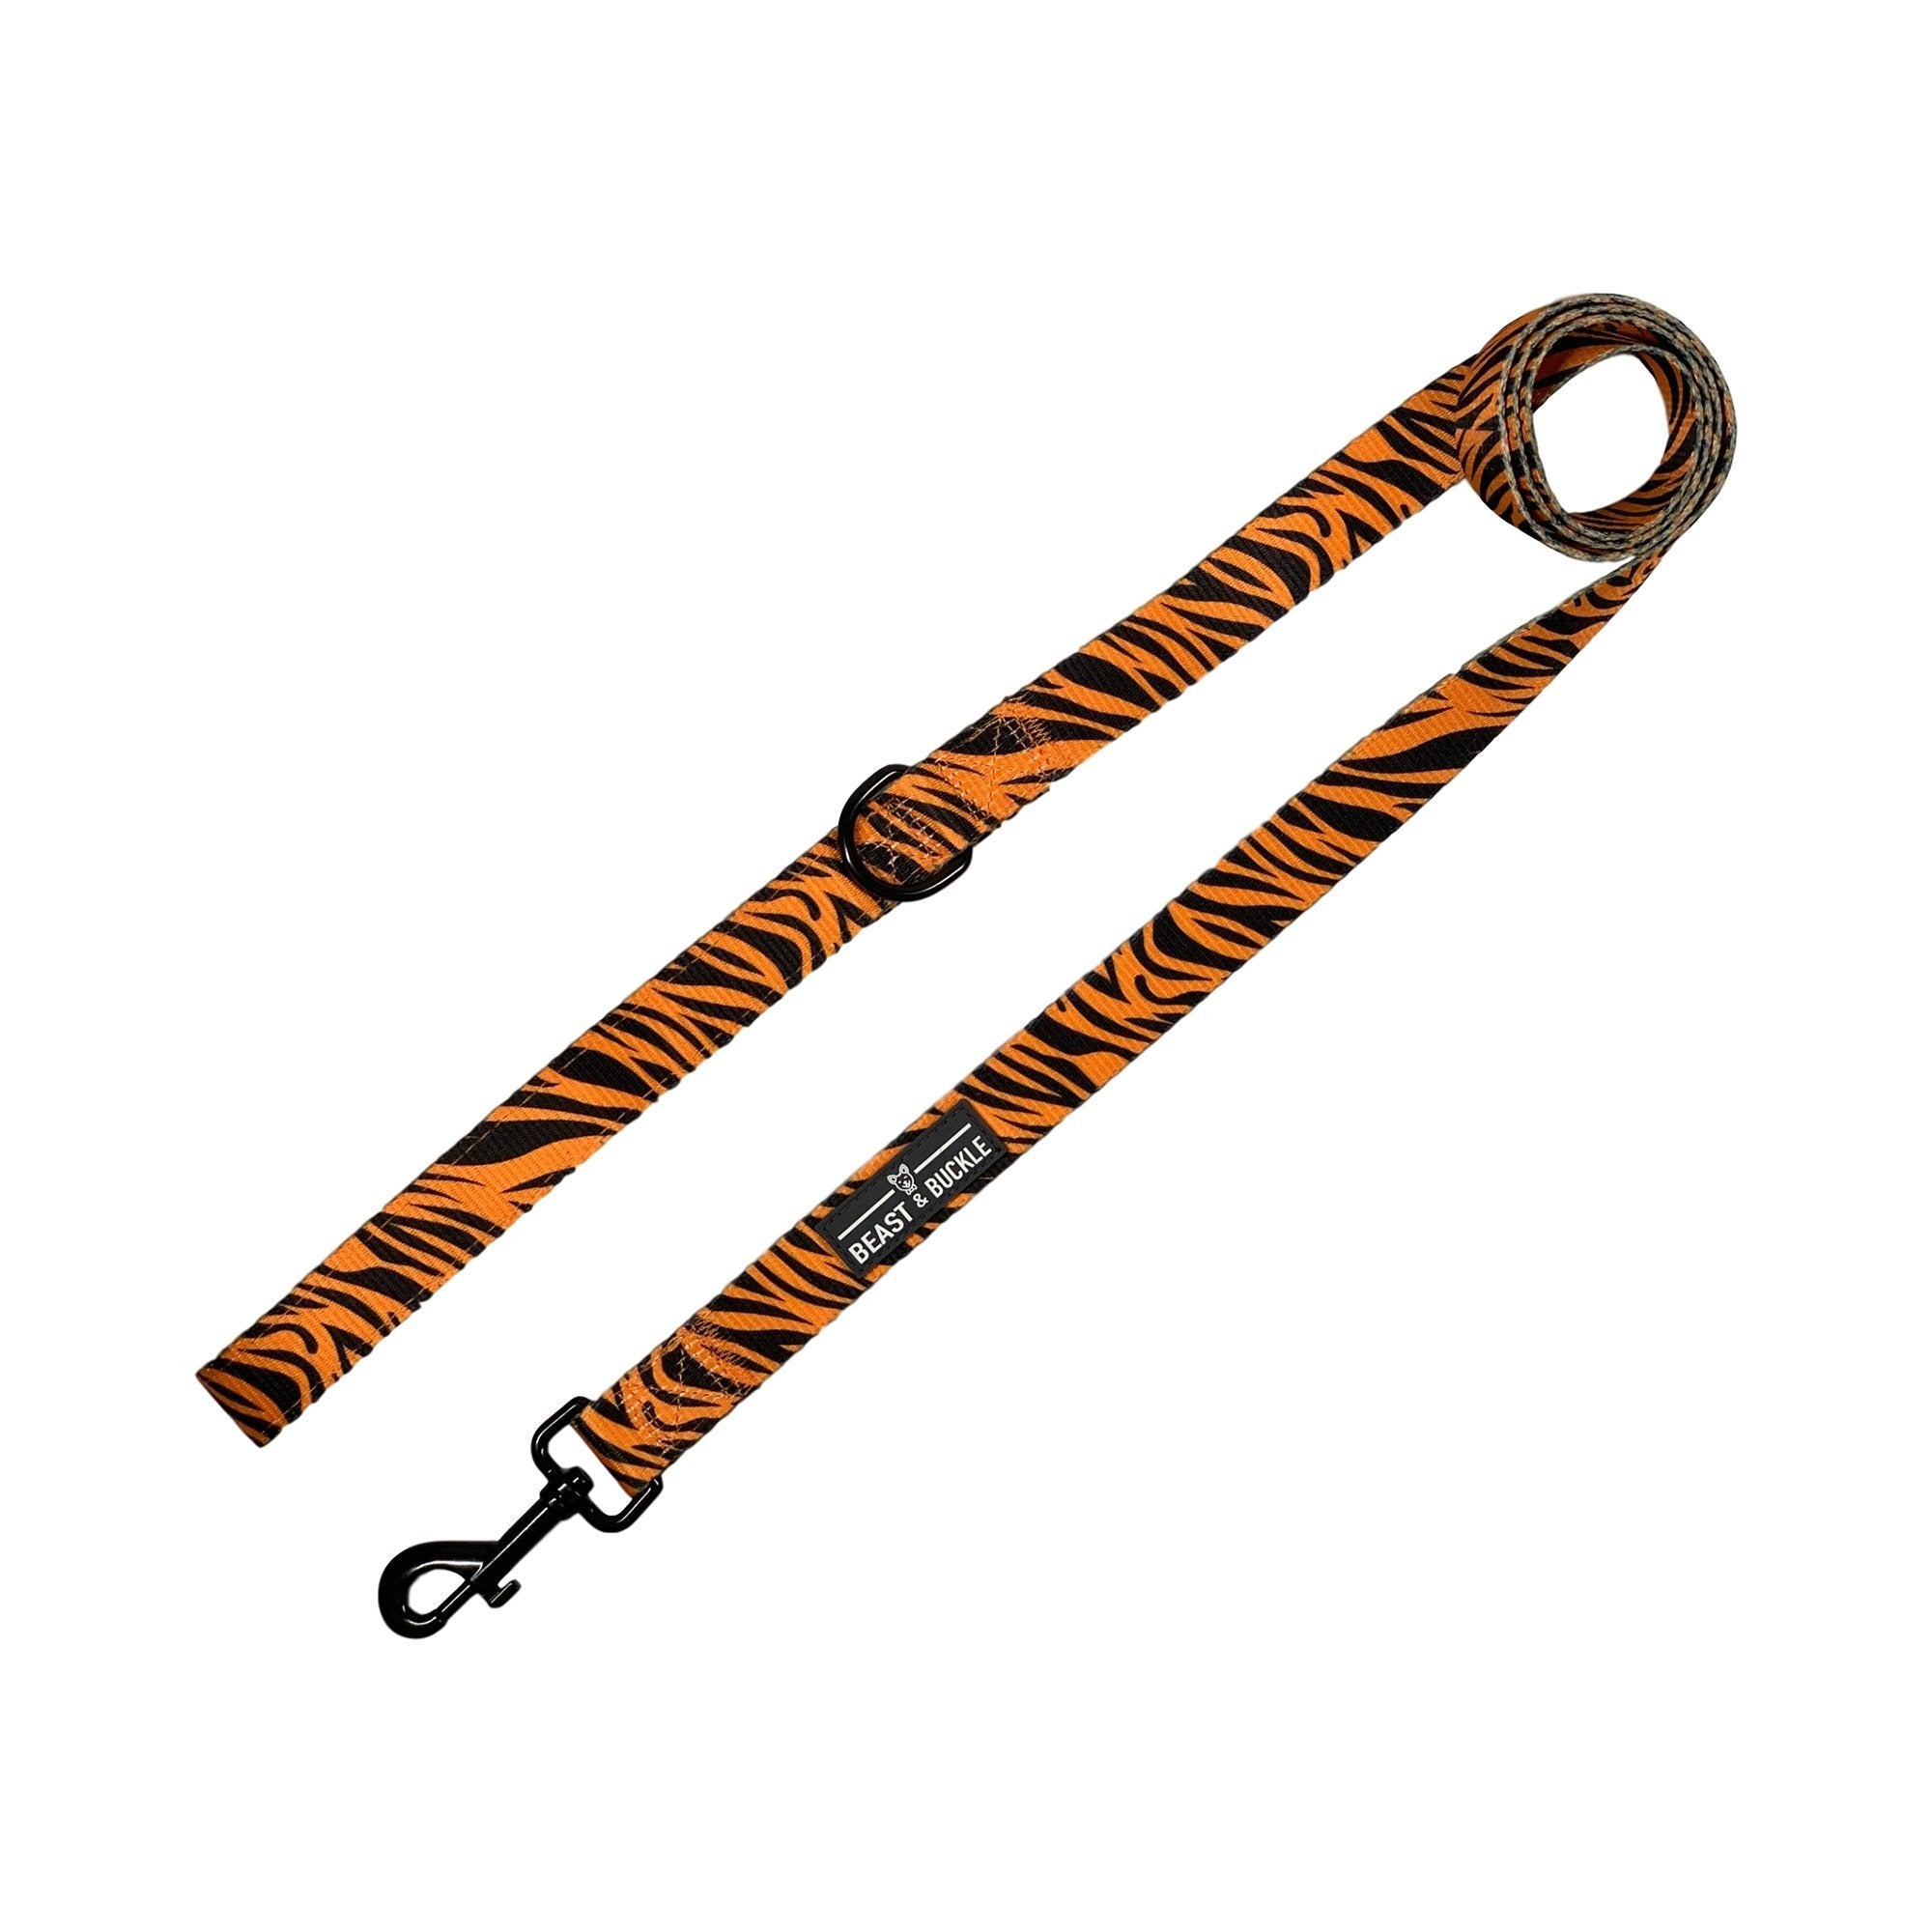 Tiger Dog Leash - Beast & Buckle